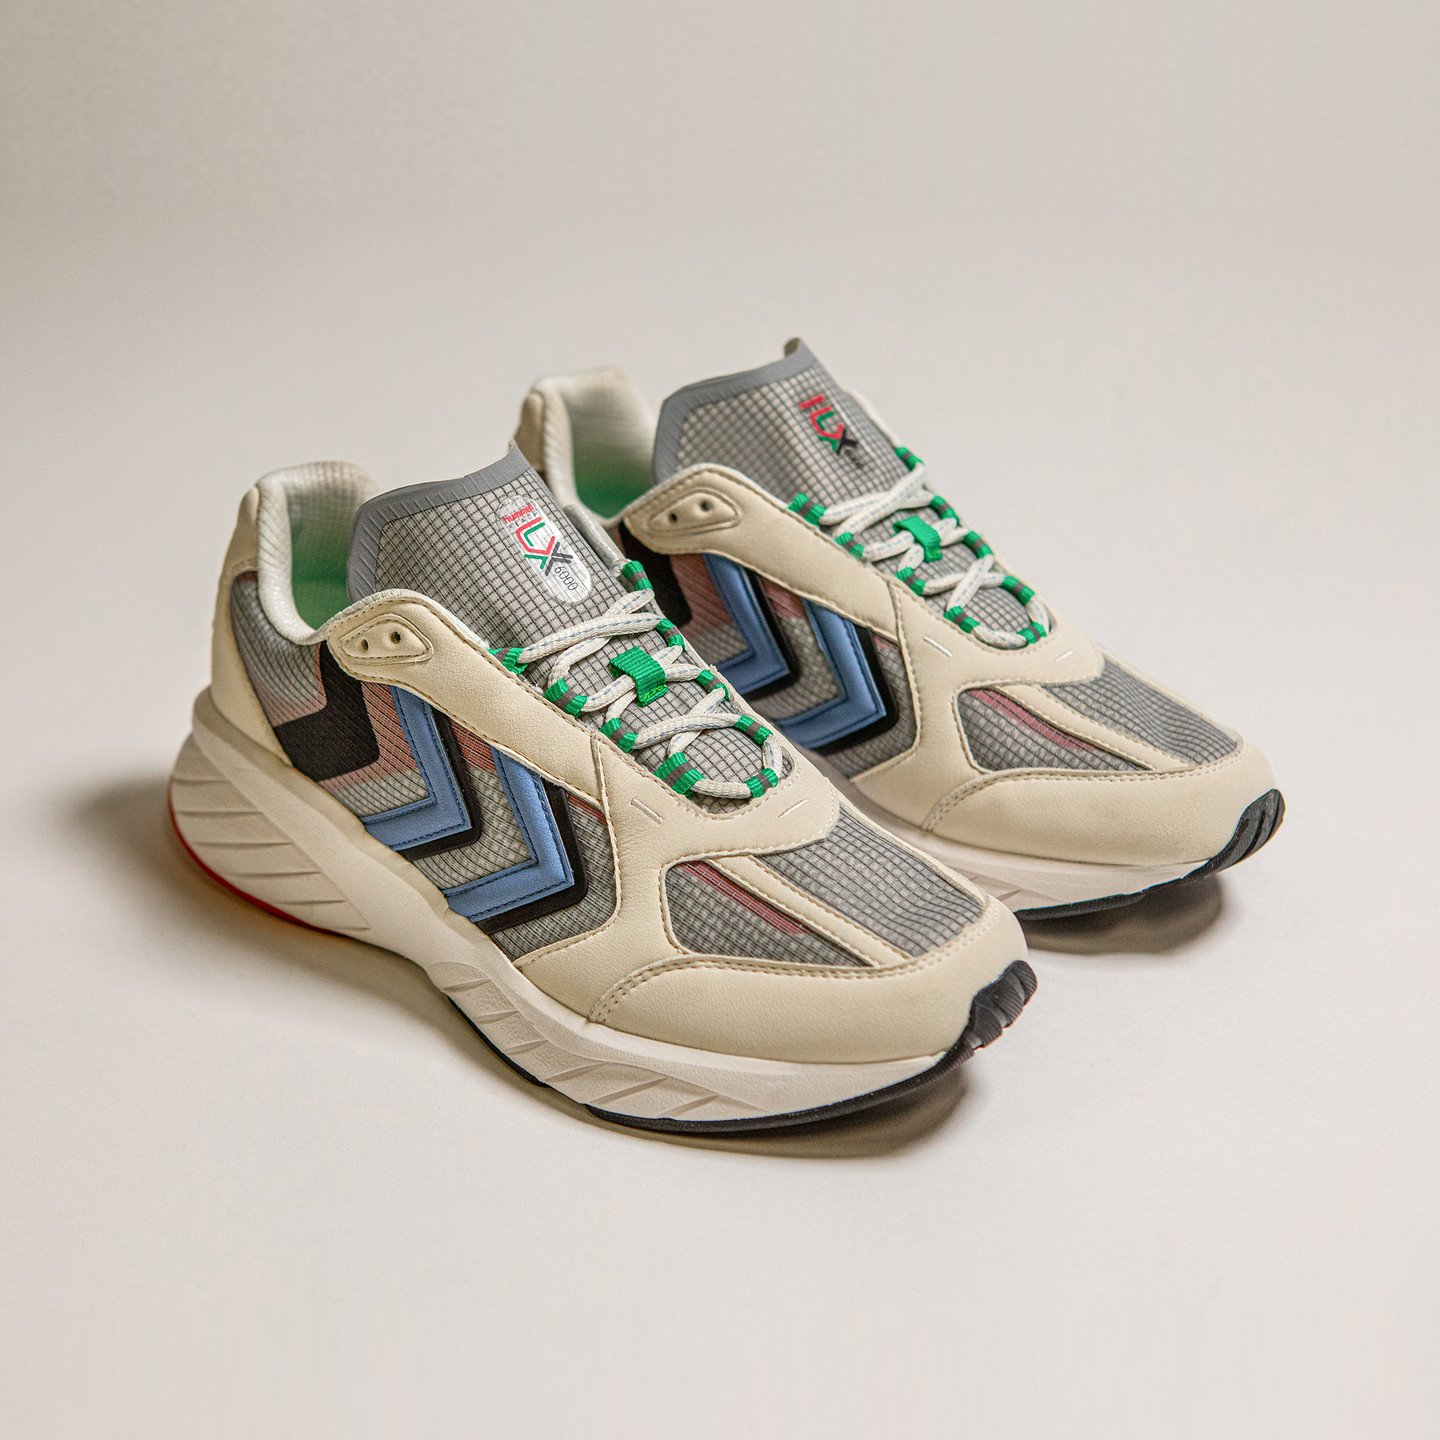 Hummel Reach LX 6000 Archive Off White / Grey / Blue / Green 209011-9031